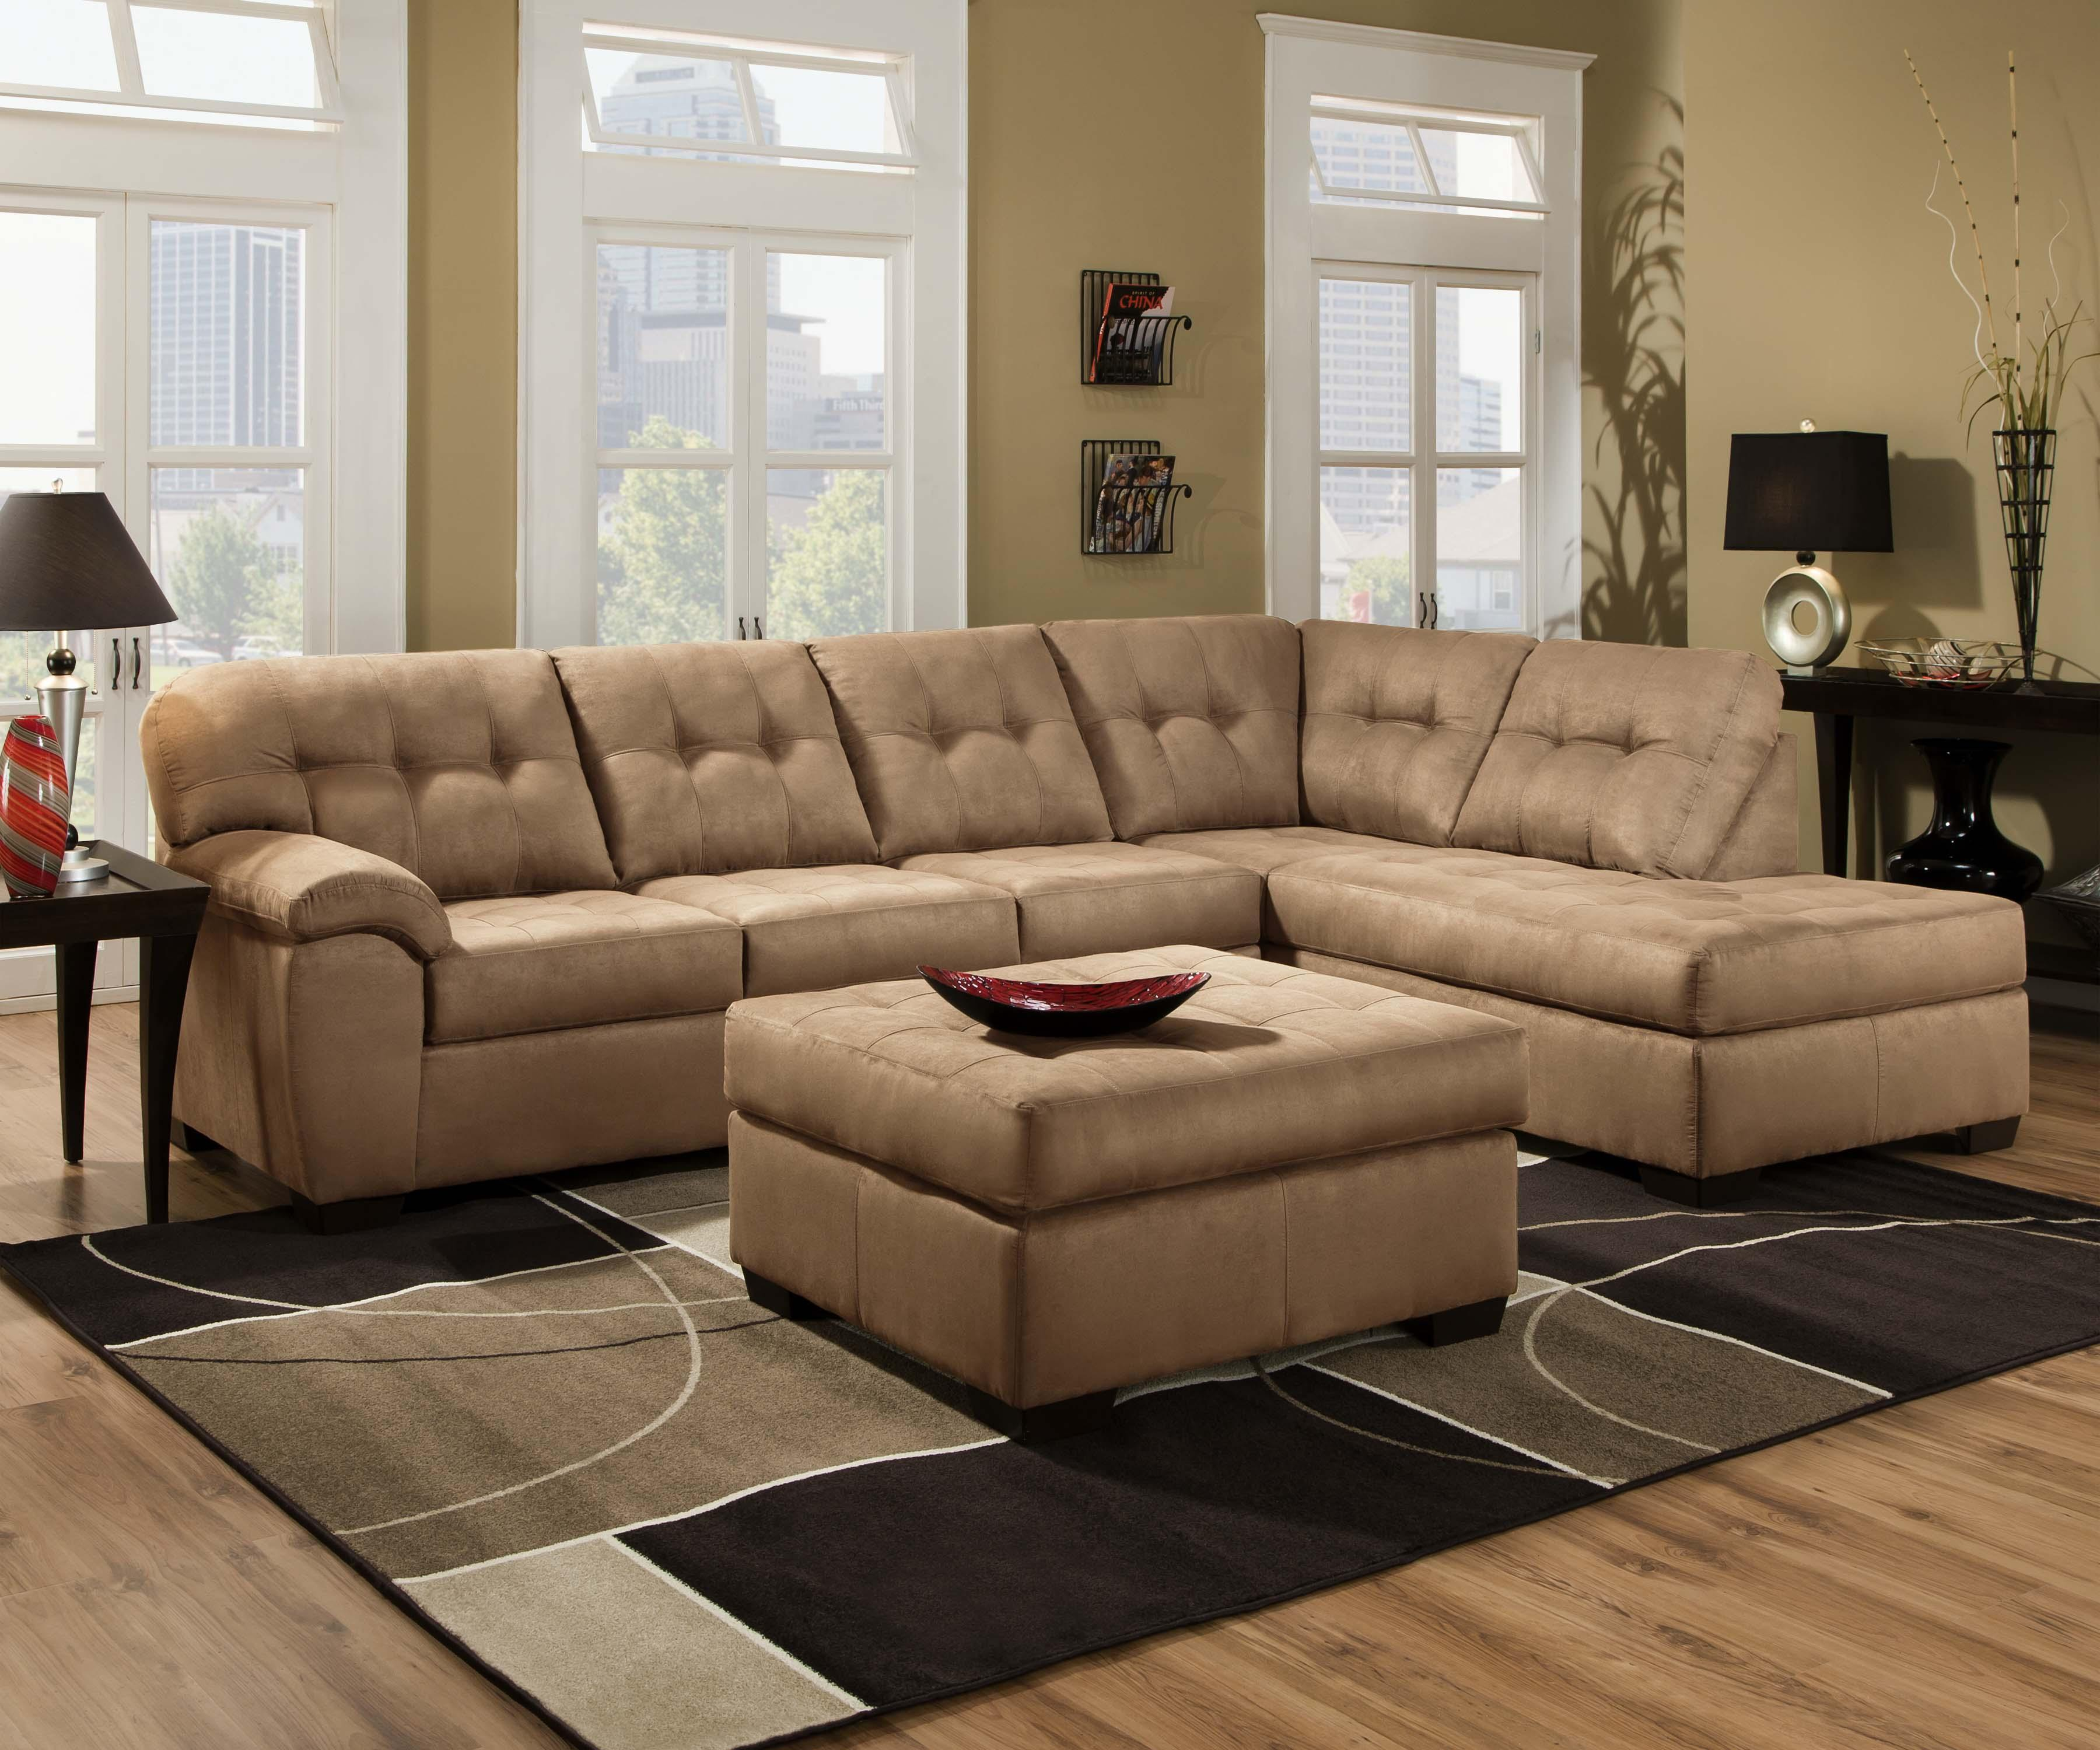 united furniture industries 2 piece sectional sofa with chaise item number laf